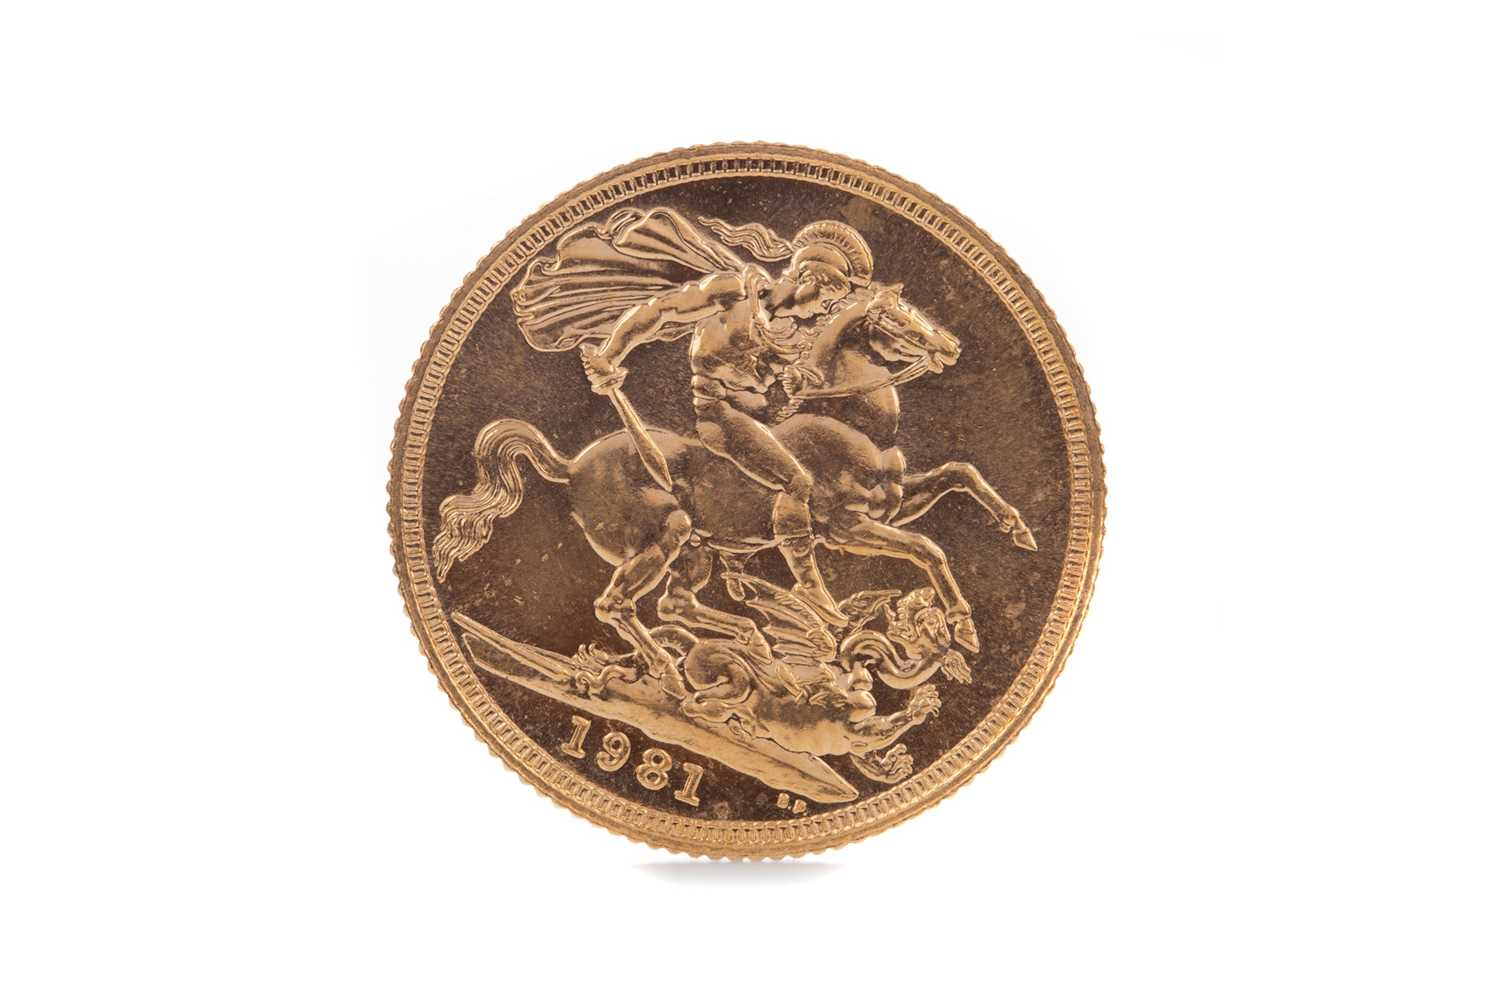 Lot 30 - AN ELIZABETH II GOLD SOVEREIGN DATED 1981